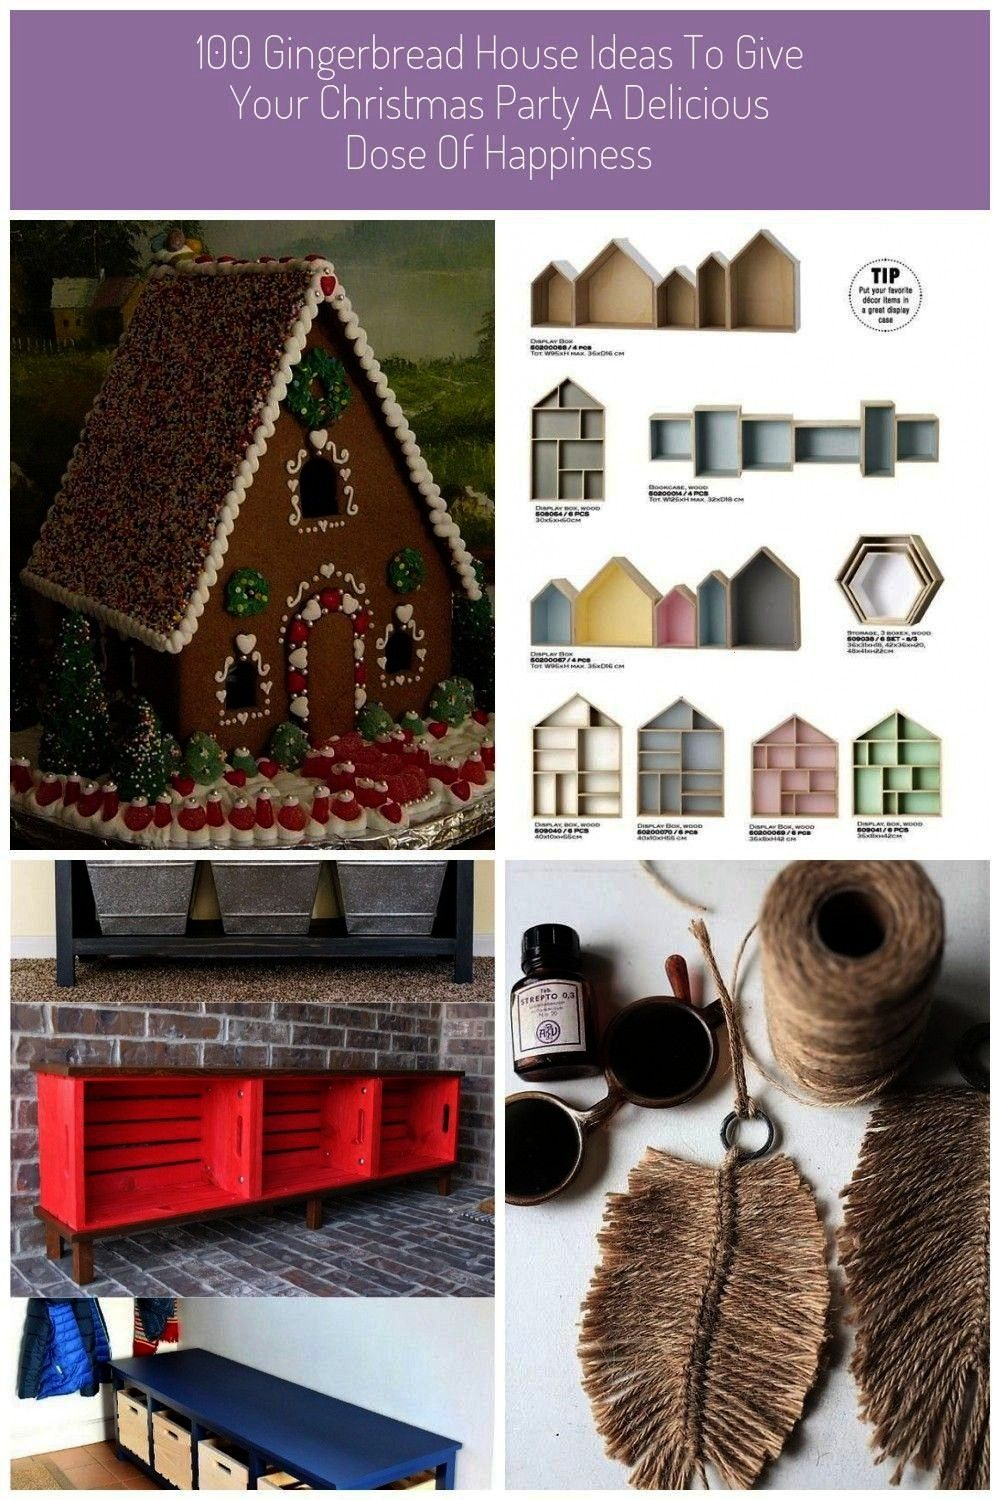 House Ideas to give your Christmas Party a Delicious Dose of Happiness - Hike n Dip house decor 100